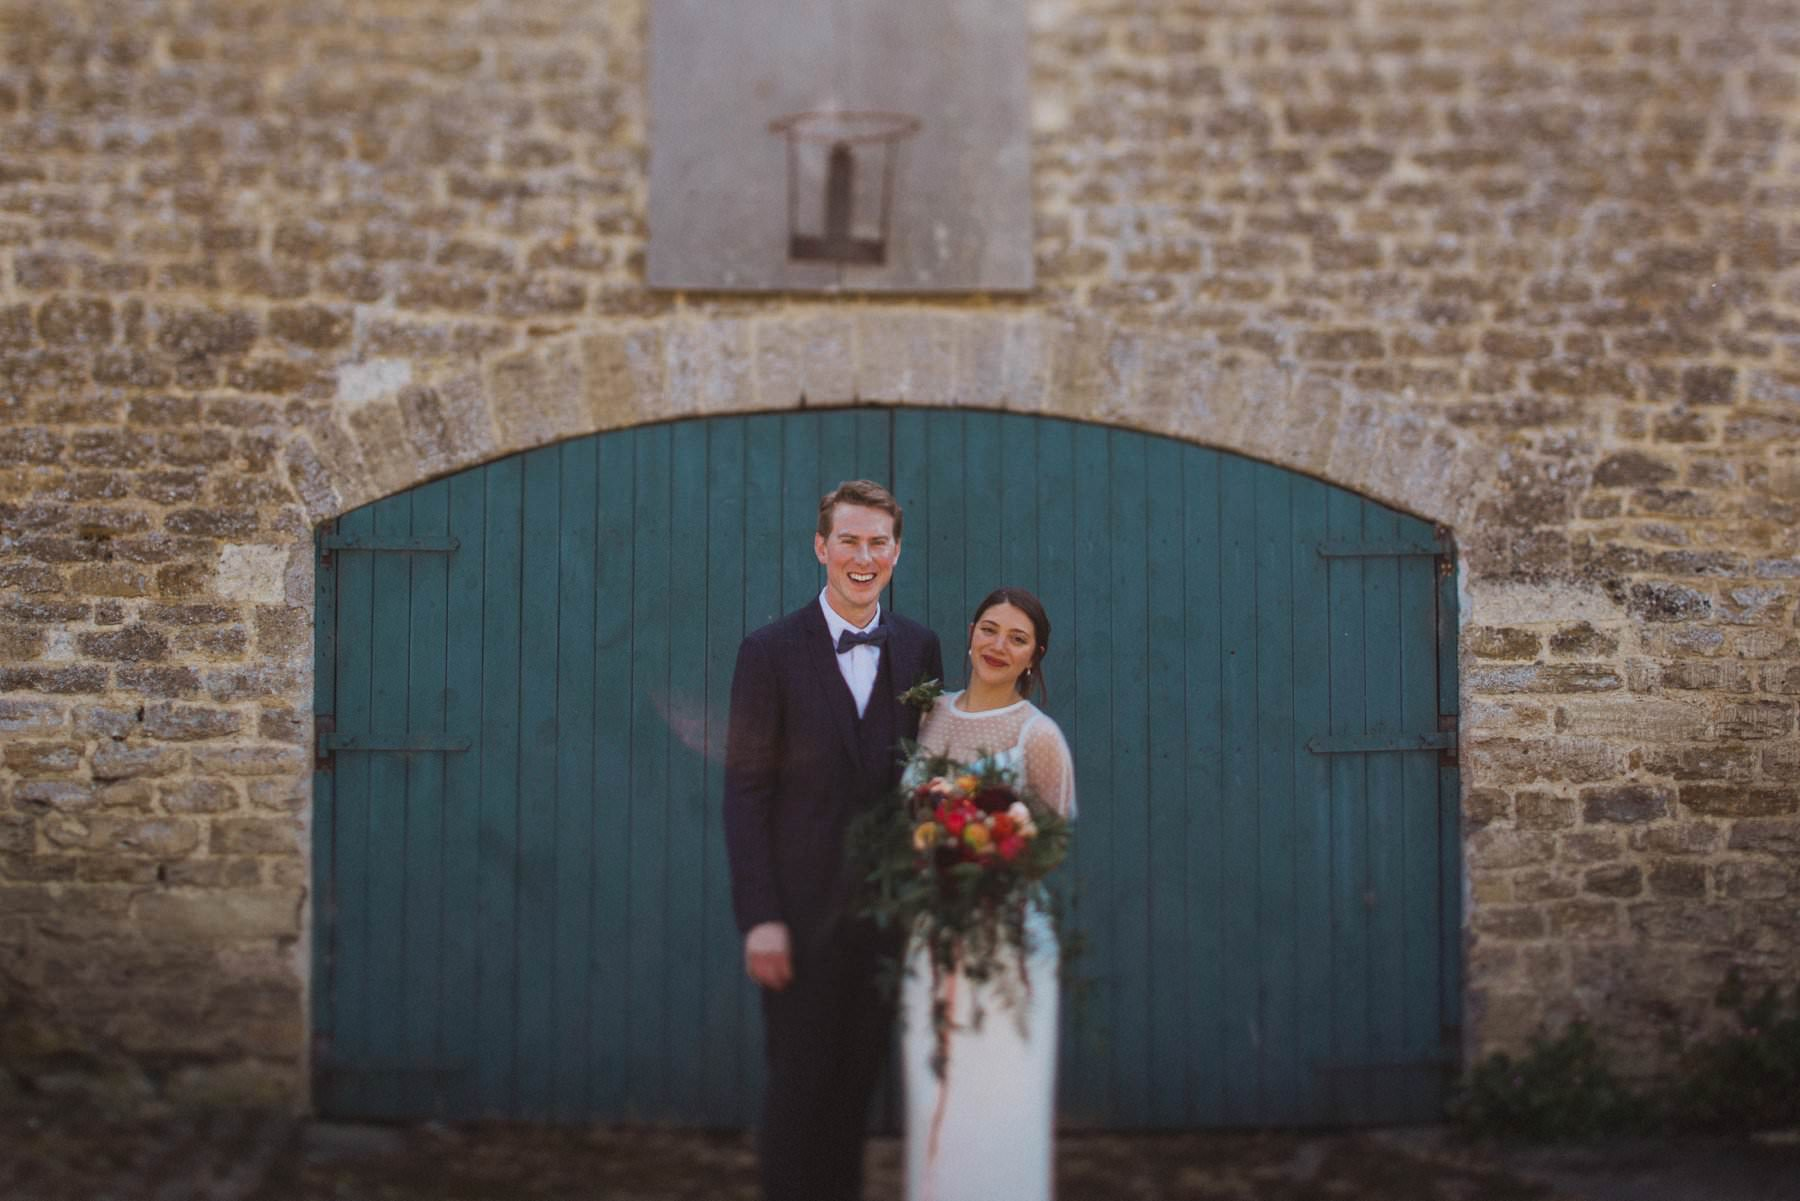 bride and groom pose for wedding portraits in front of barn door at stowford manor farm outside bath